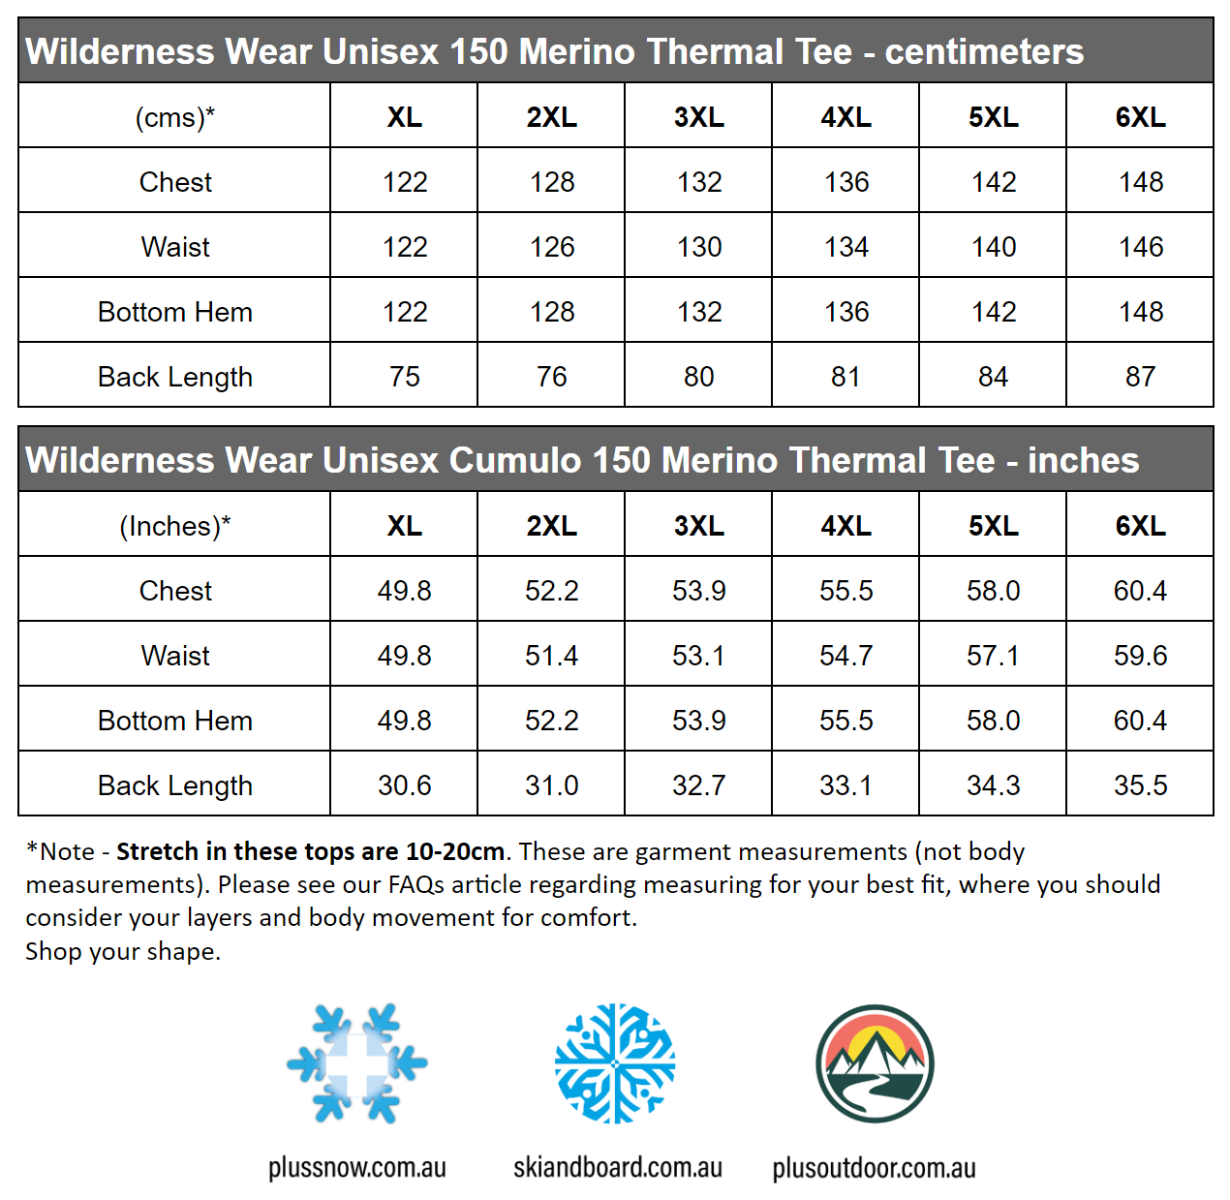 Wilderness Wear Unisex 150 Merino Wool Plus Size Thermal Tee Light Grey Size Chart snip